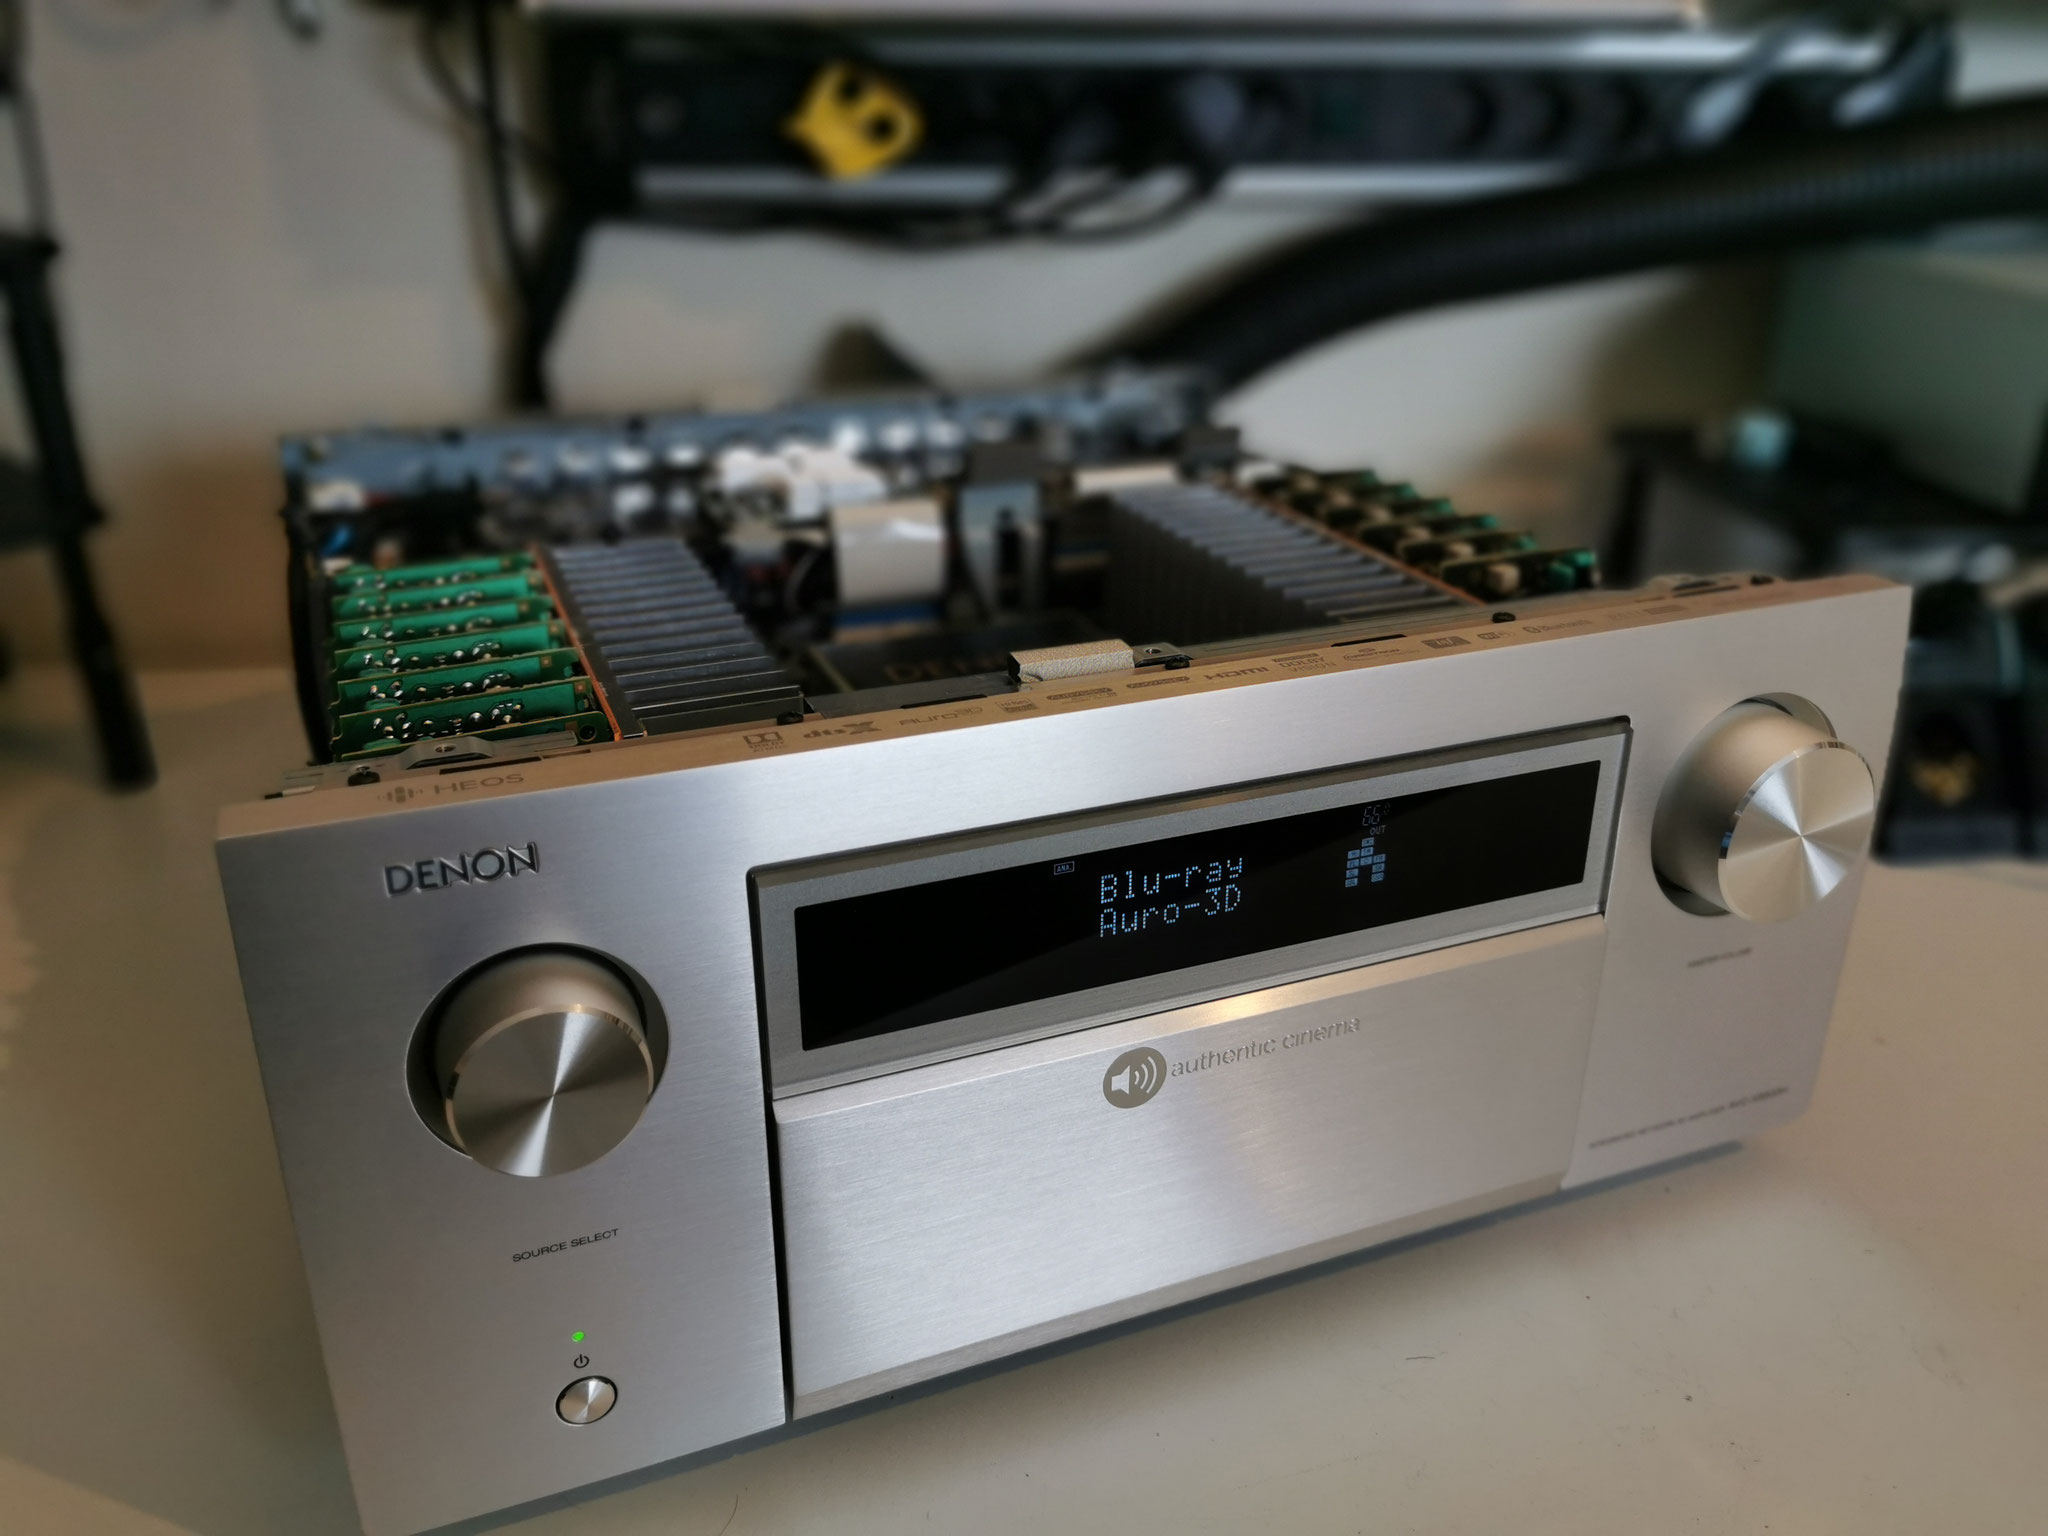 Denon AVC-X8500H authentic cinema removed top cover